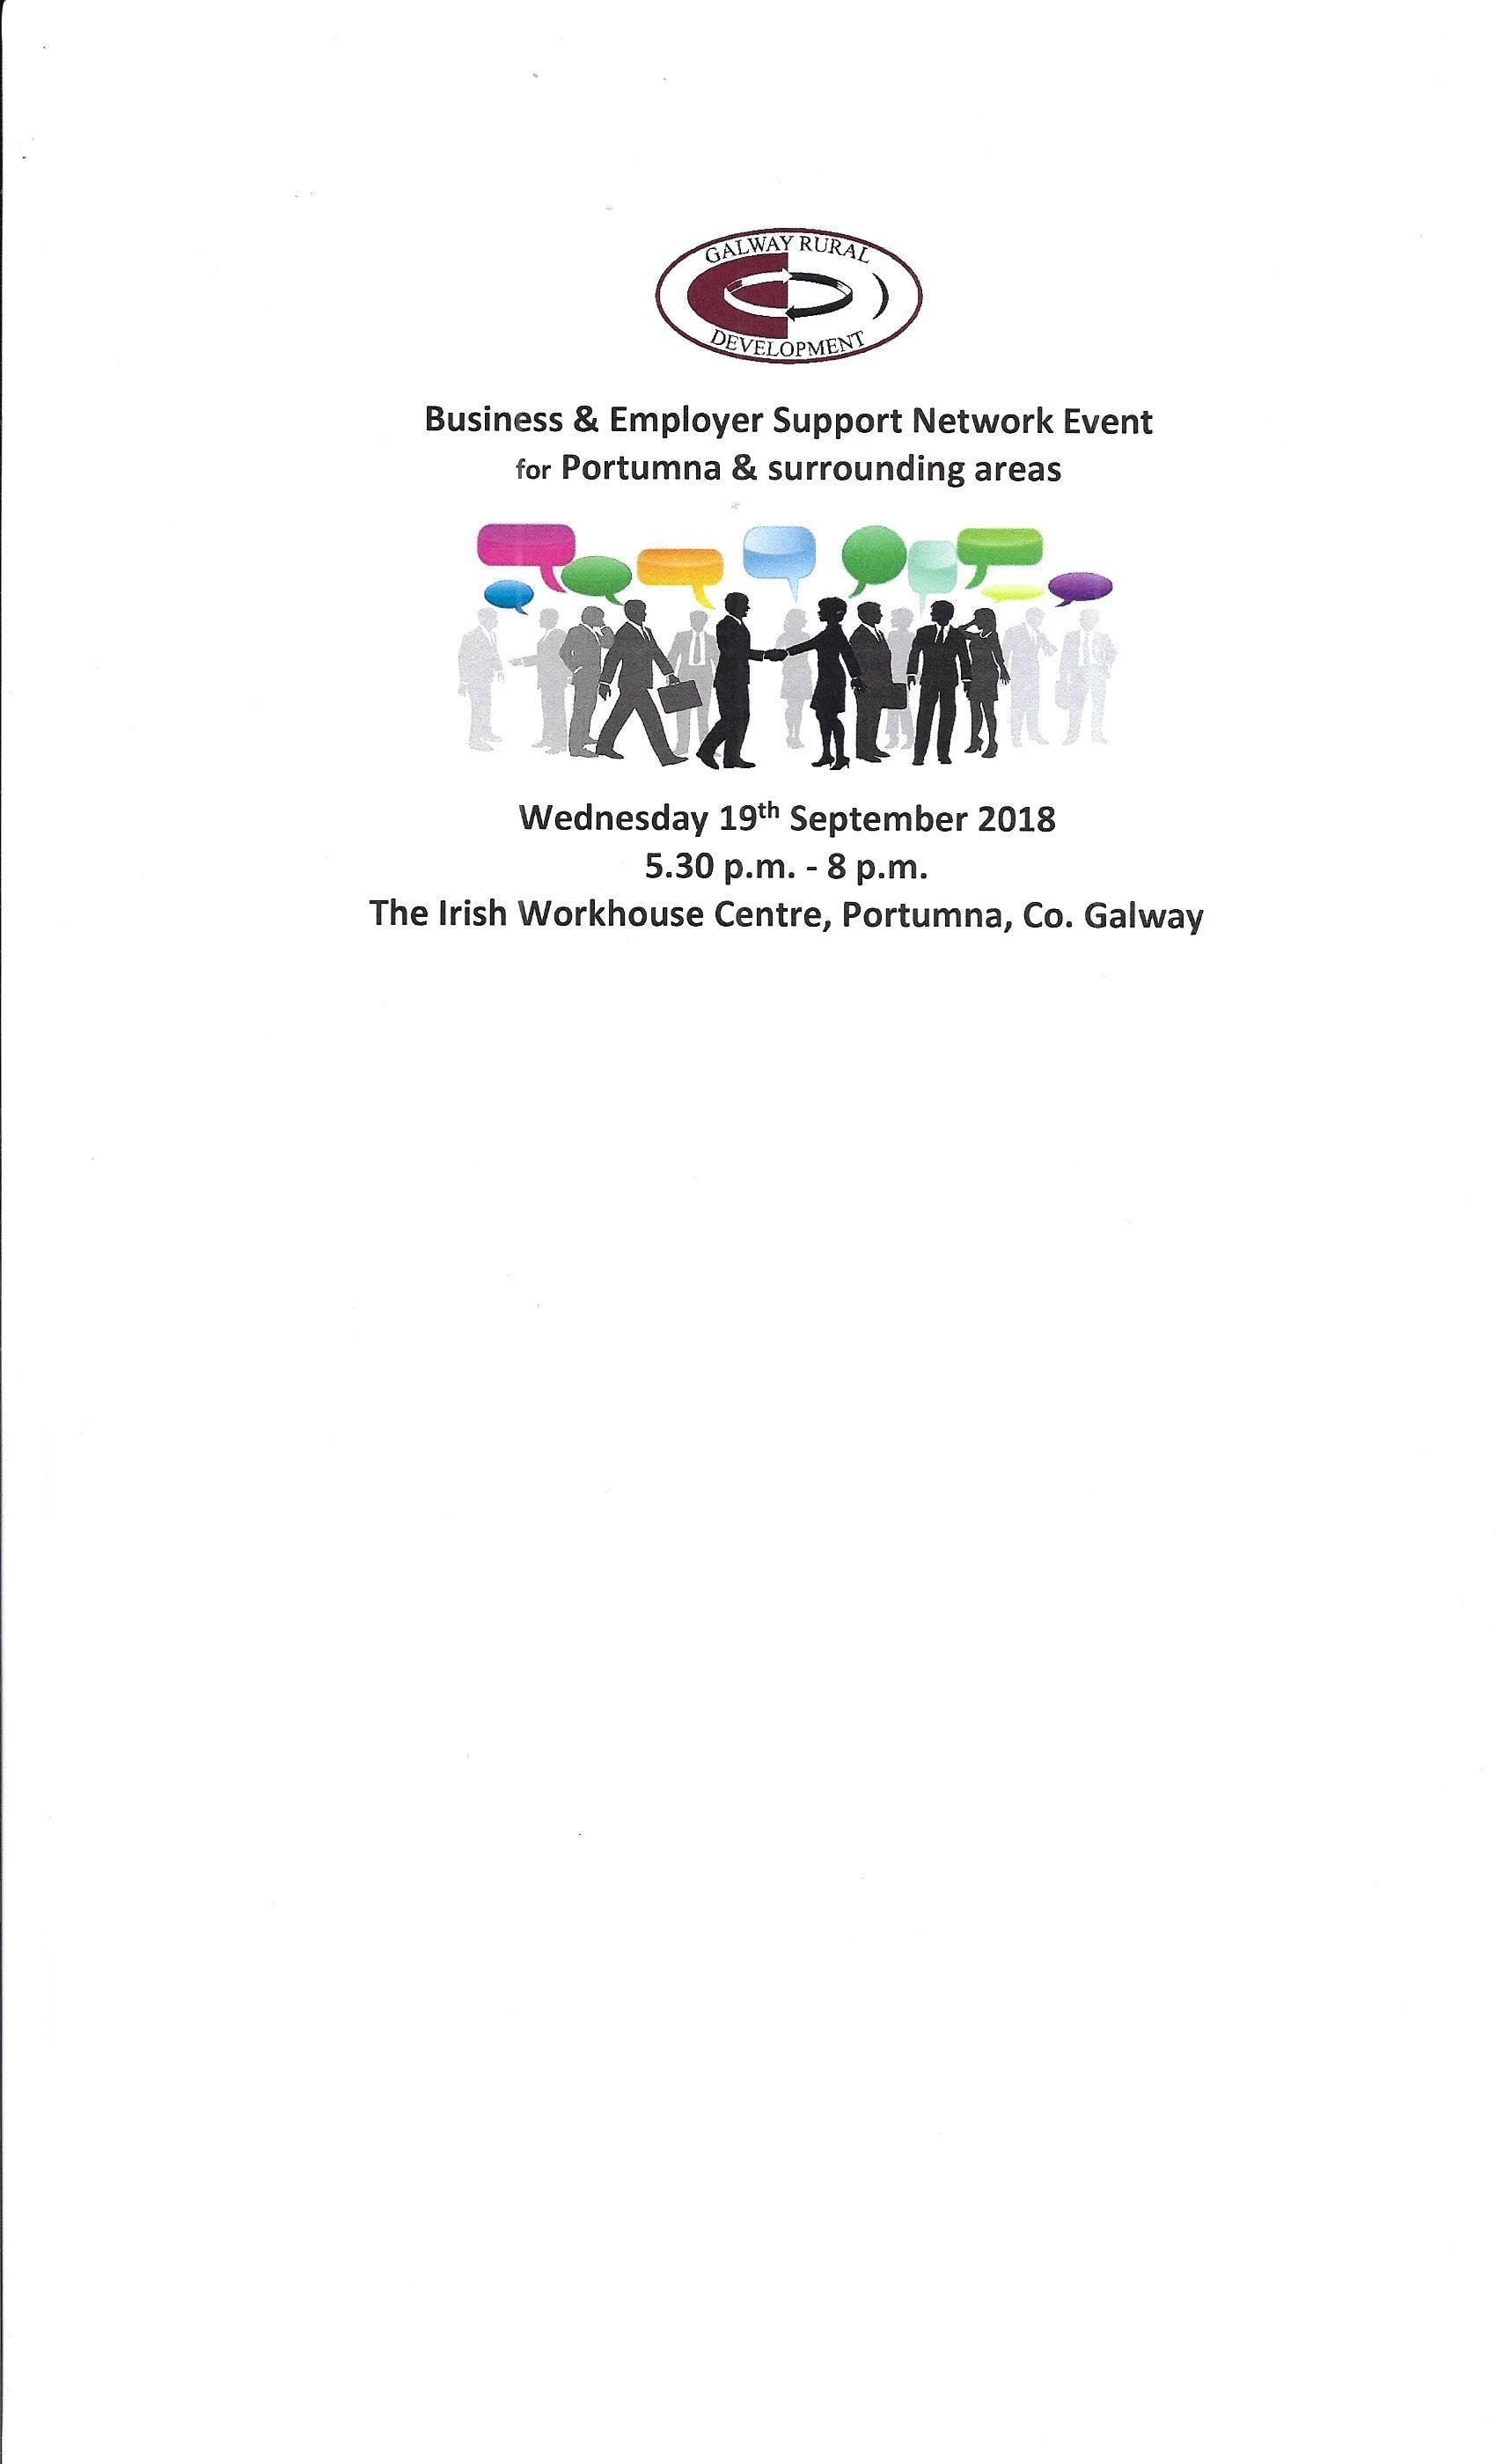 Business & Employer Support Network Events